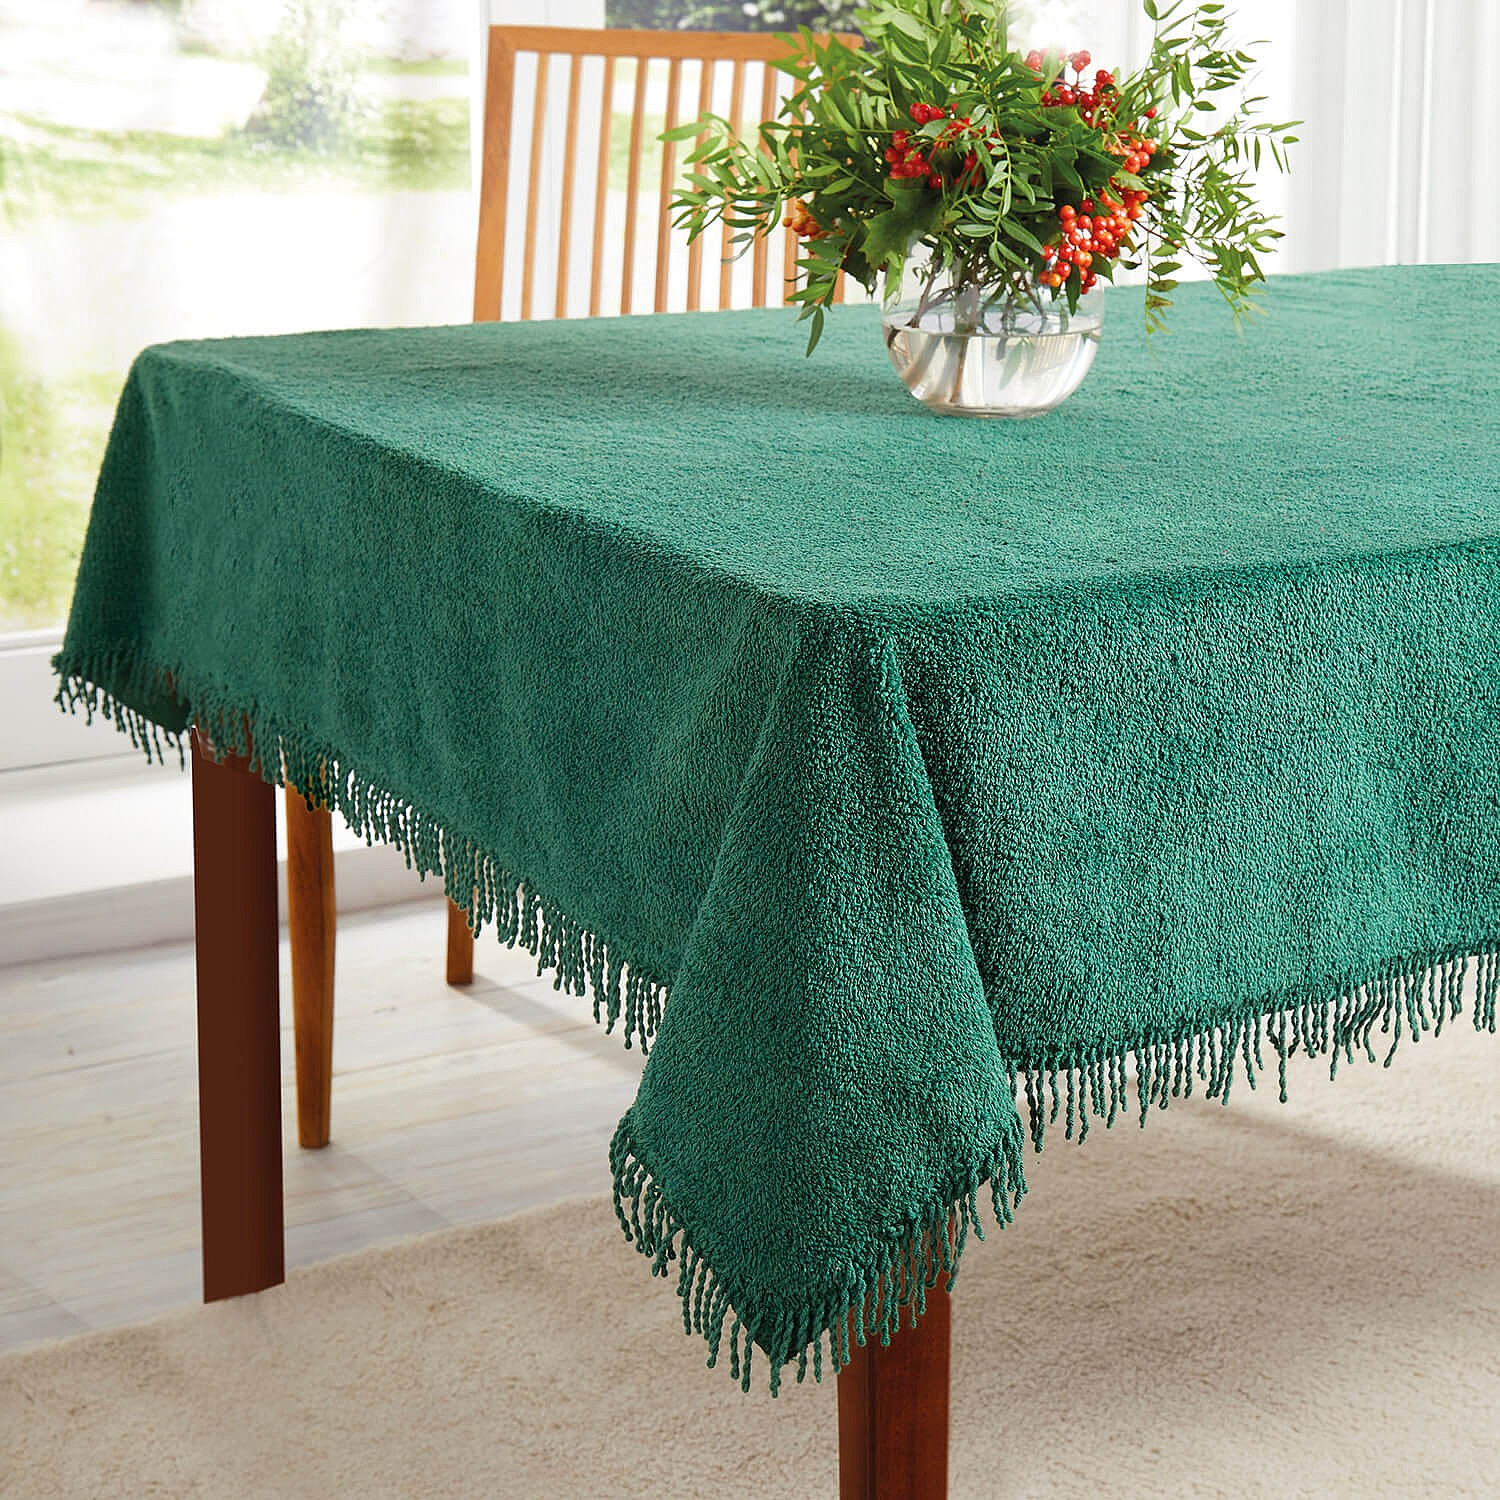 Chenille Tablecloths Burgundy Round Dia. 132Cm by Coopers of Stortford